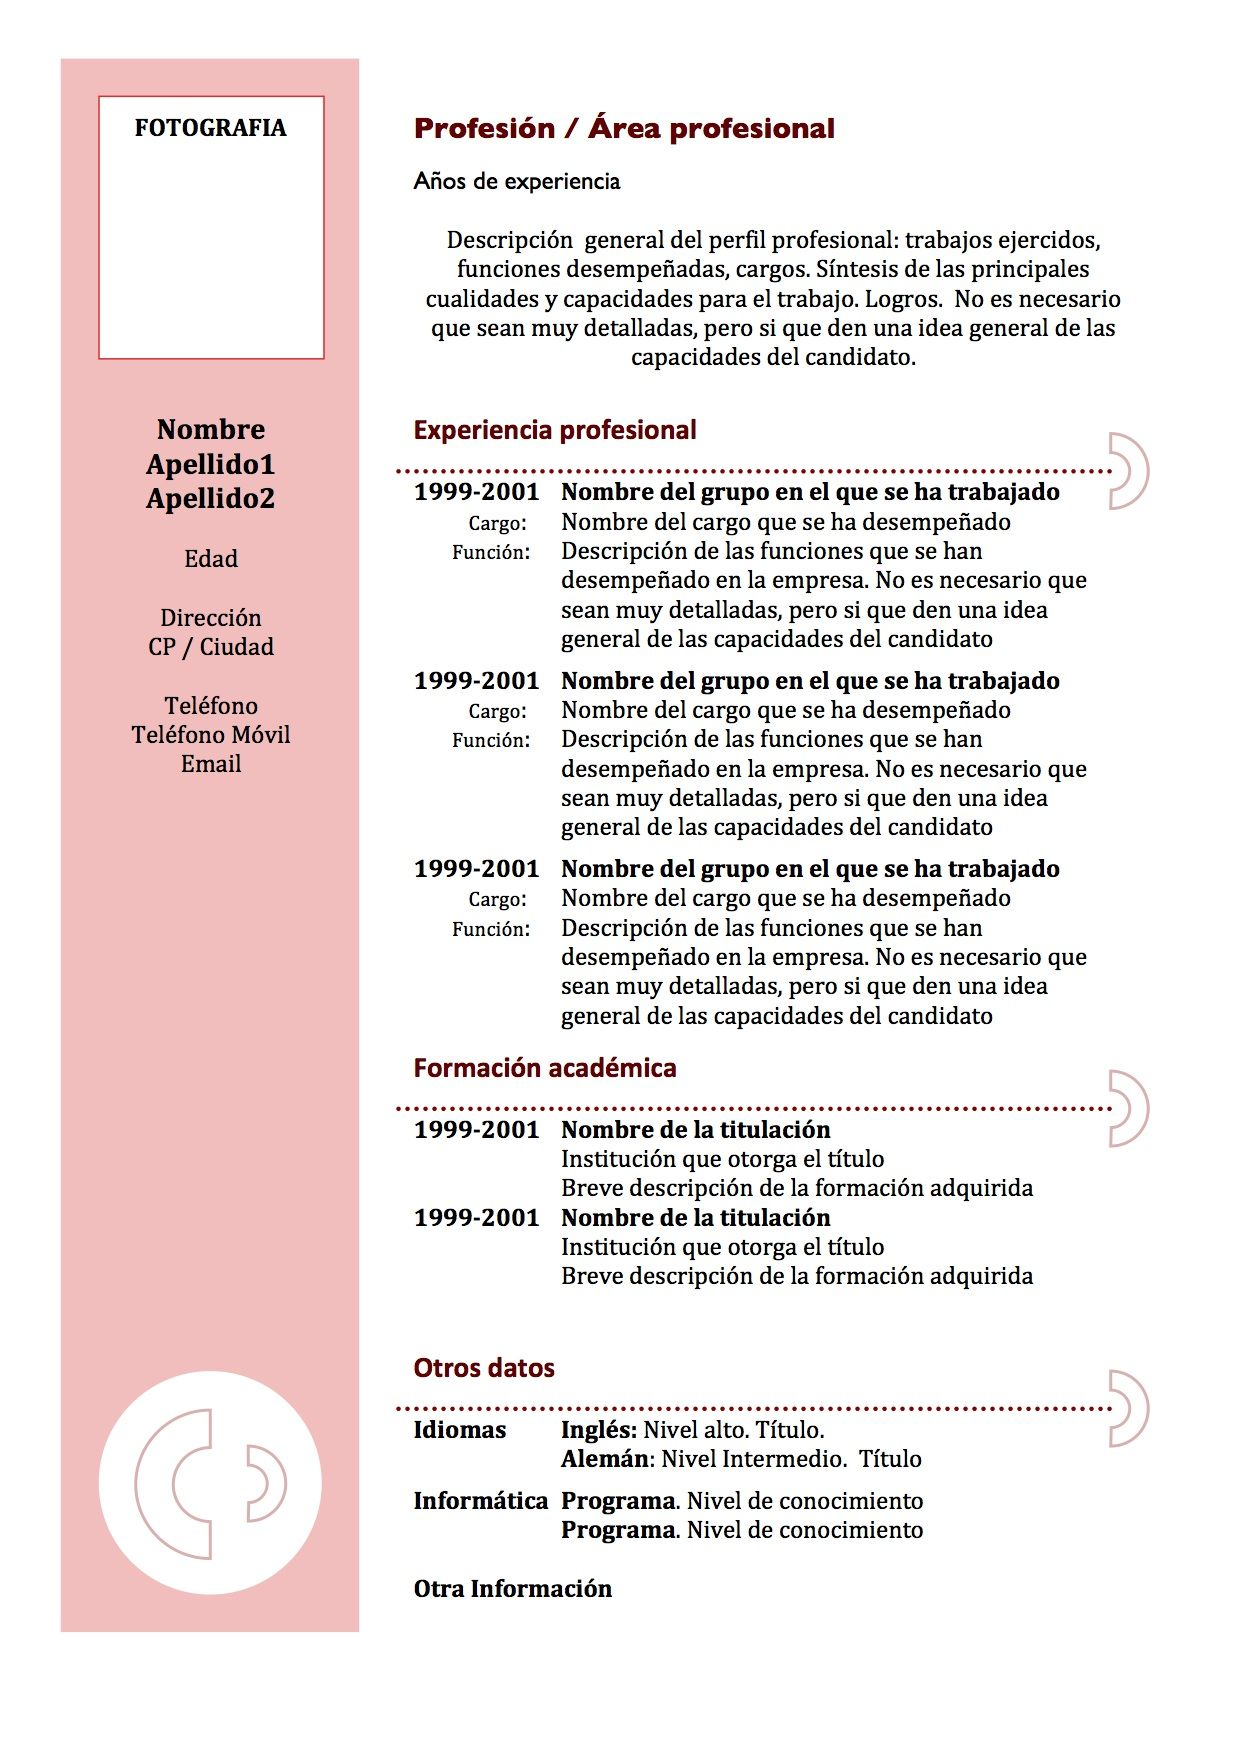 curriculum vitae - Google 검색 | Universidad | Pinterest | Plantilla ...